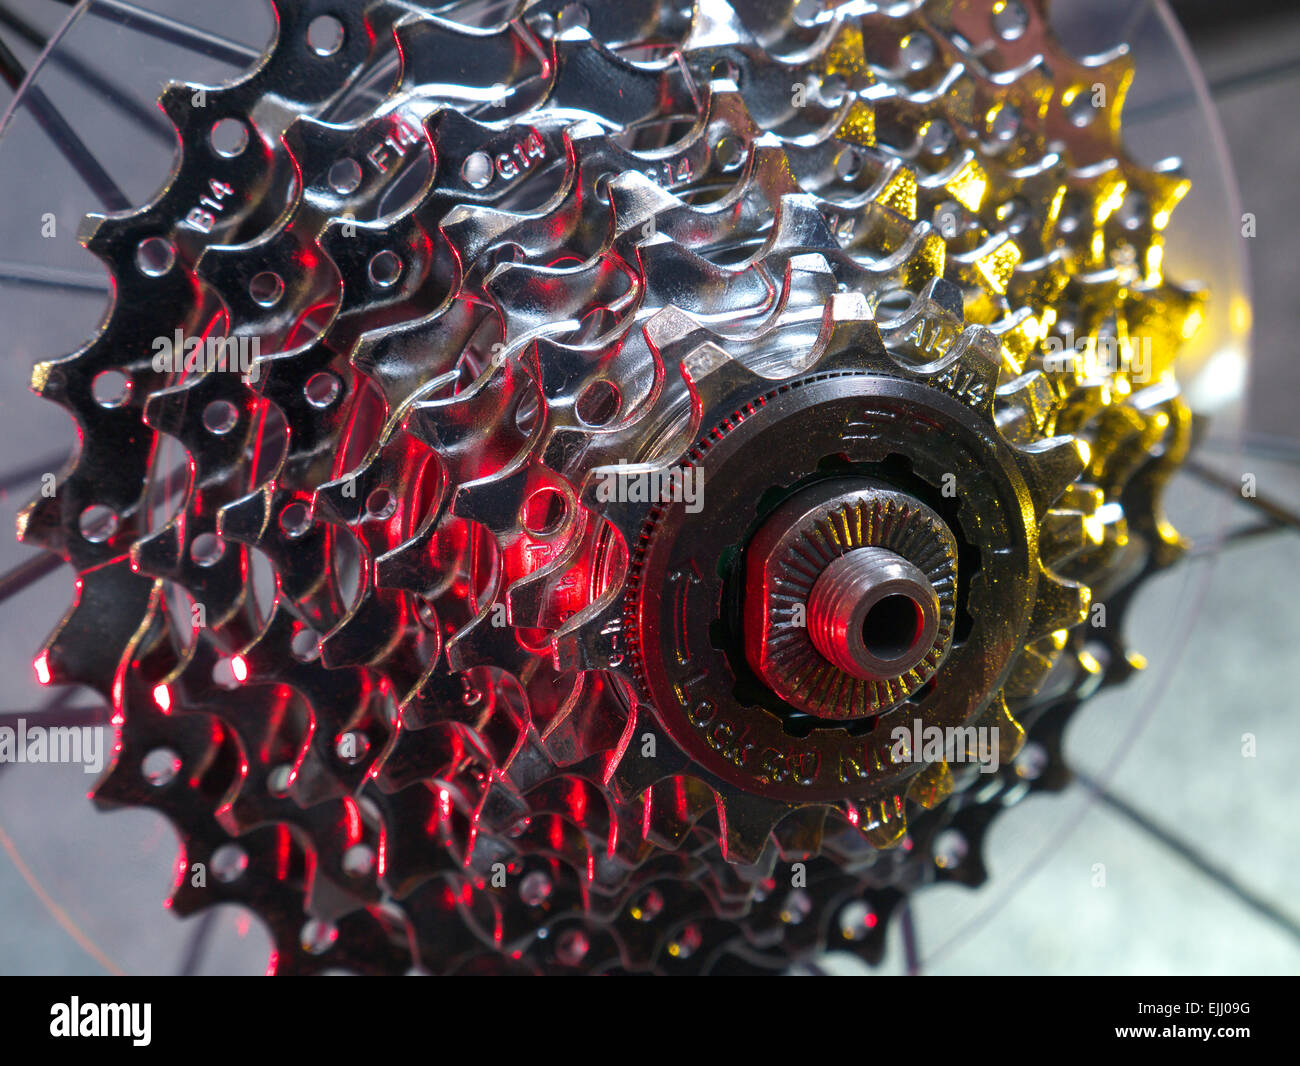 Bicycle cassette - Stock Image